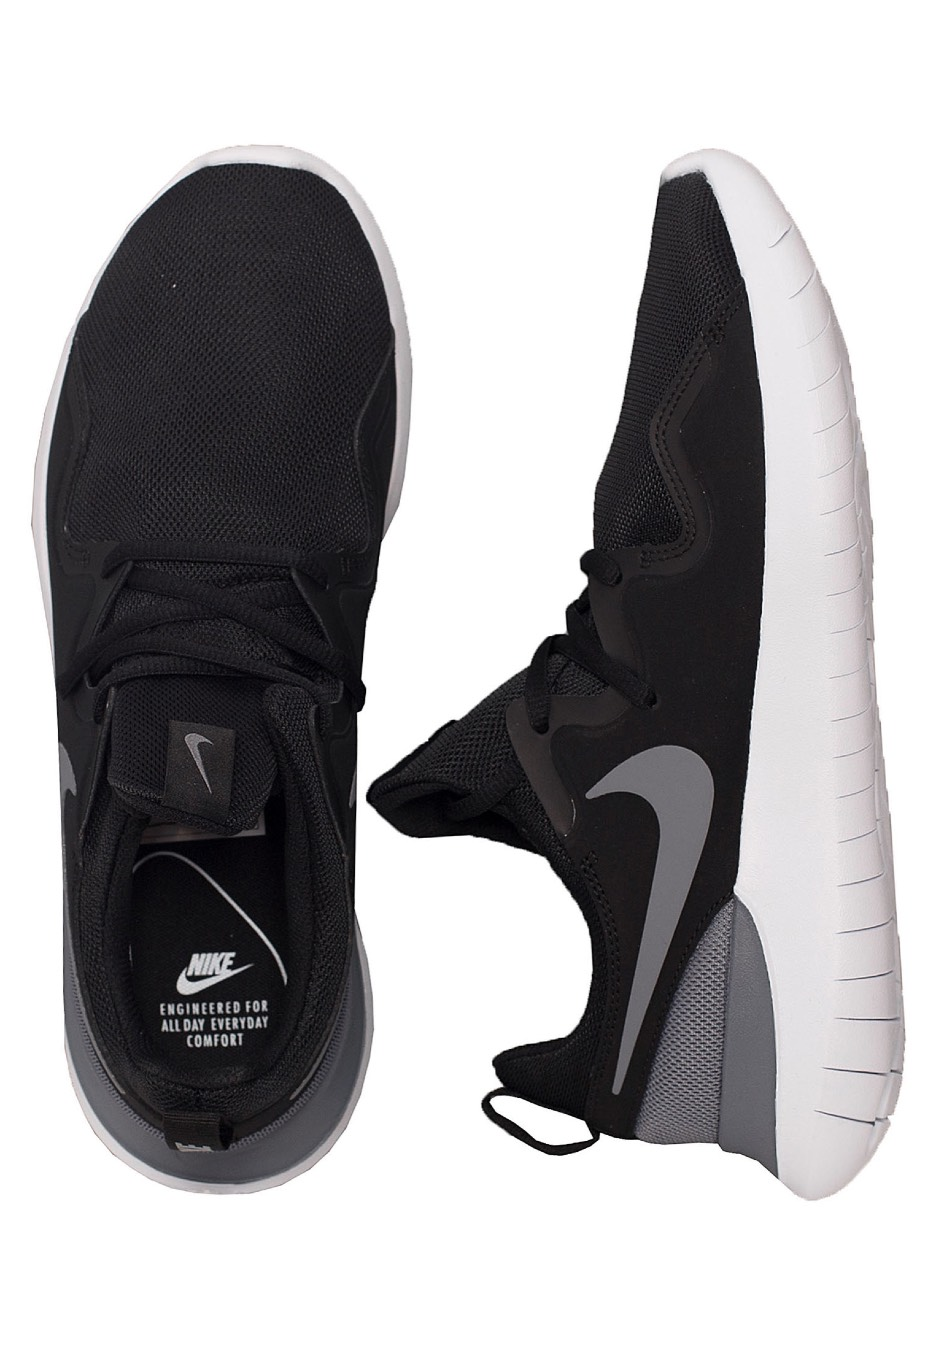 Nike Tessen Blackcool Greywhite Chaussures Fr Ruoxidqh-090114-8553562 In Many Styles Chaussures Confortables